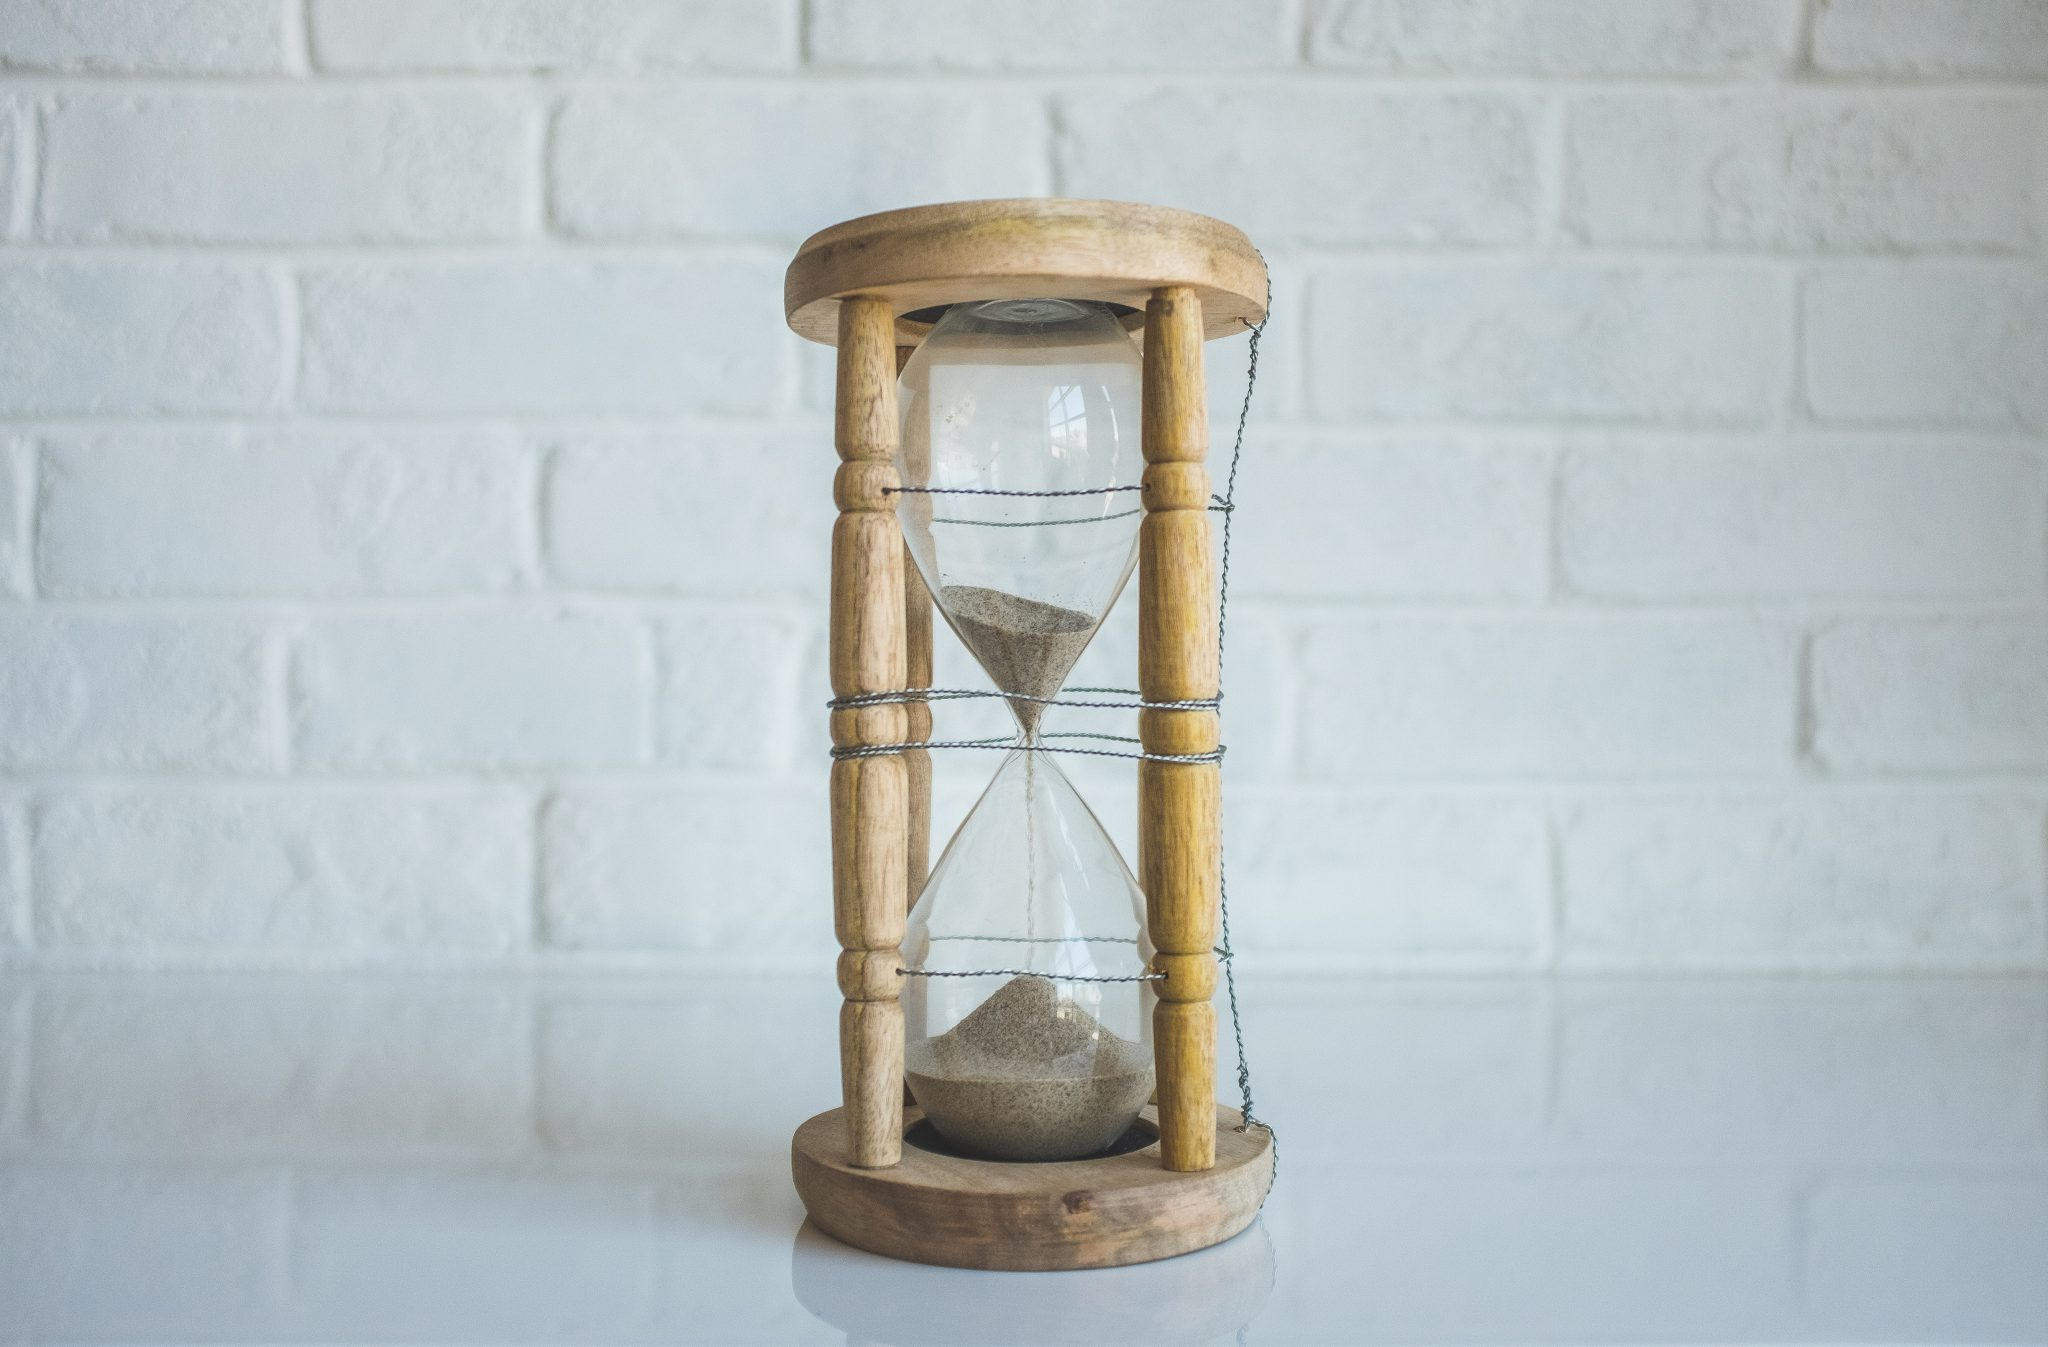 A sand timer showing that time will run out reminding you to pay your tax on time